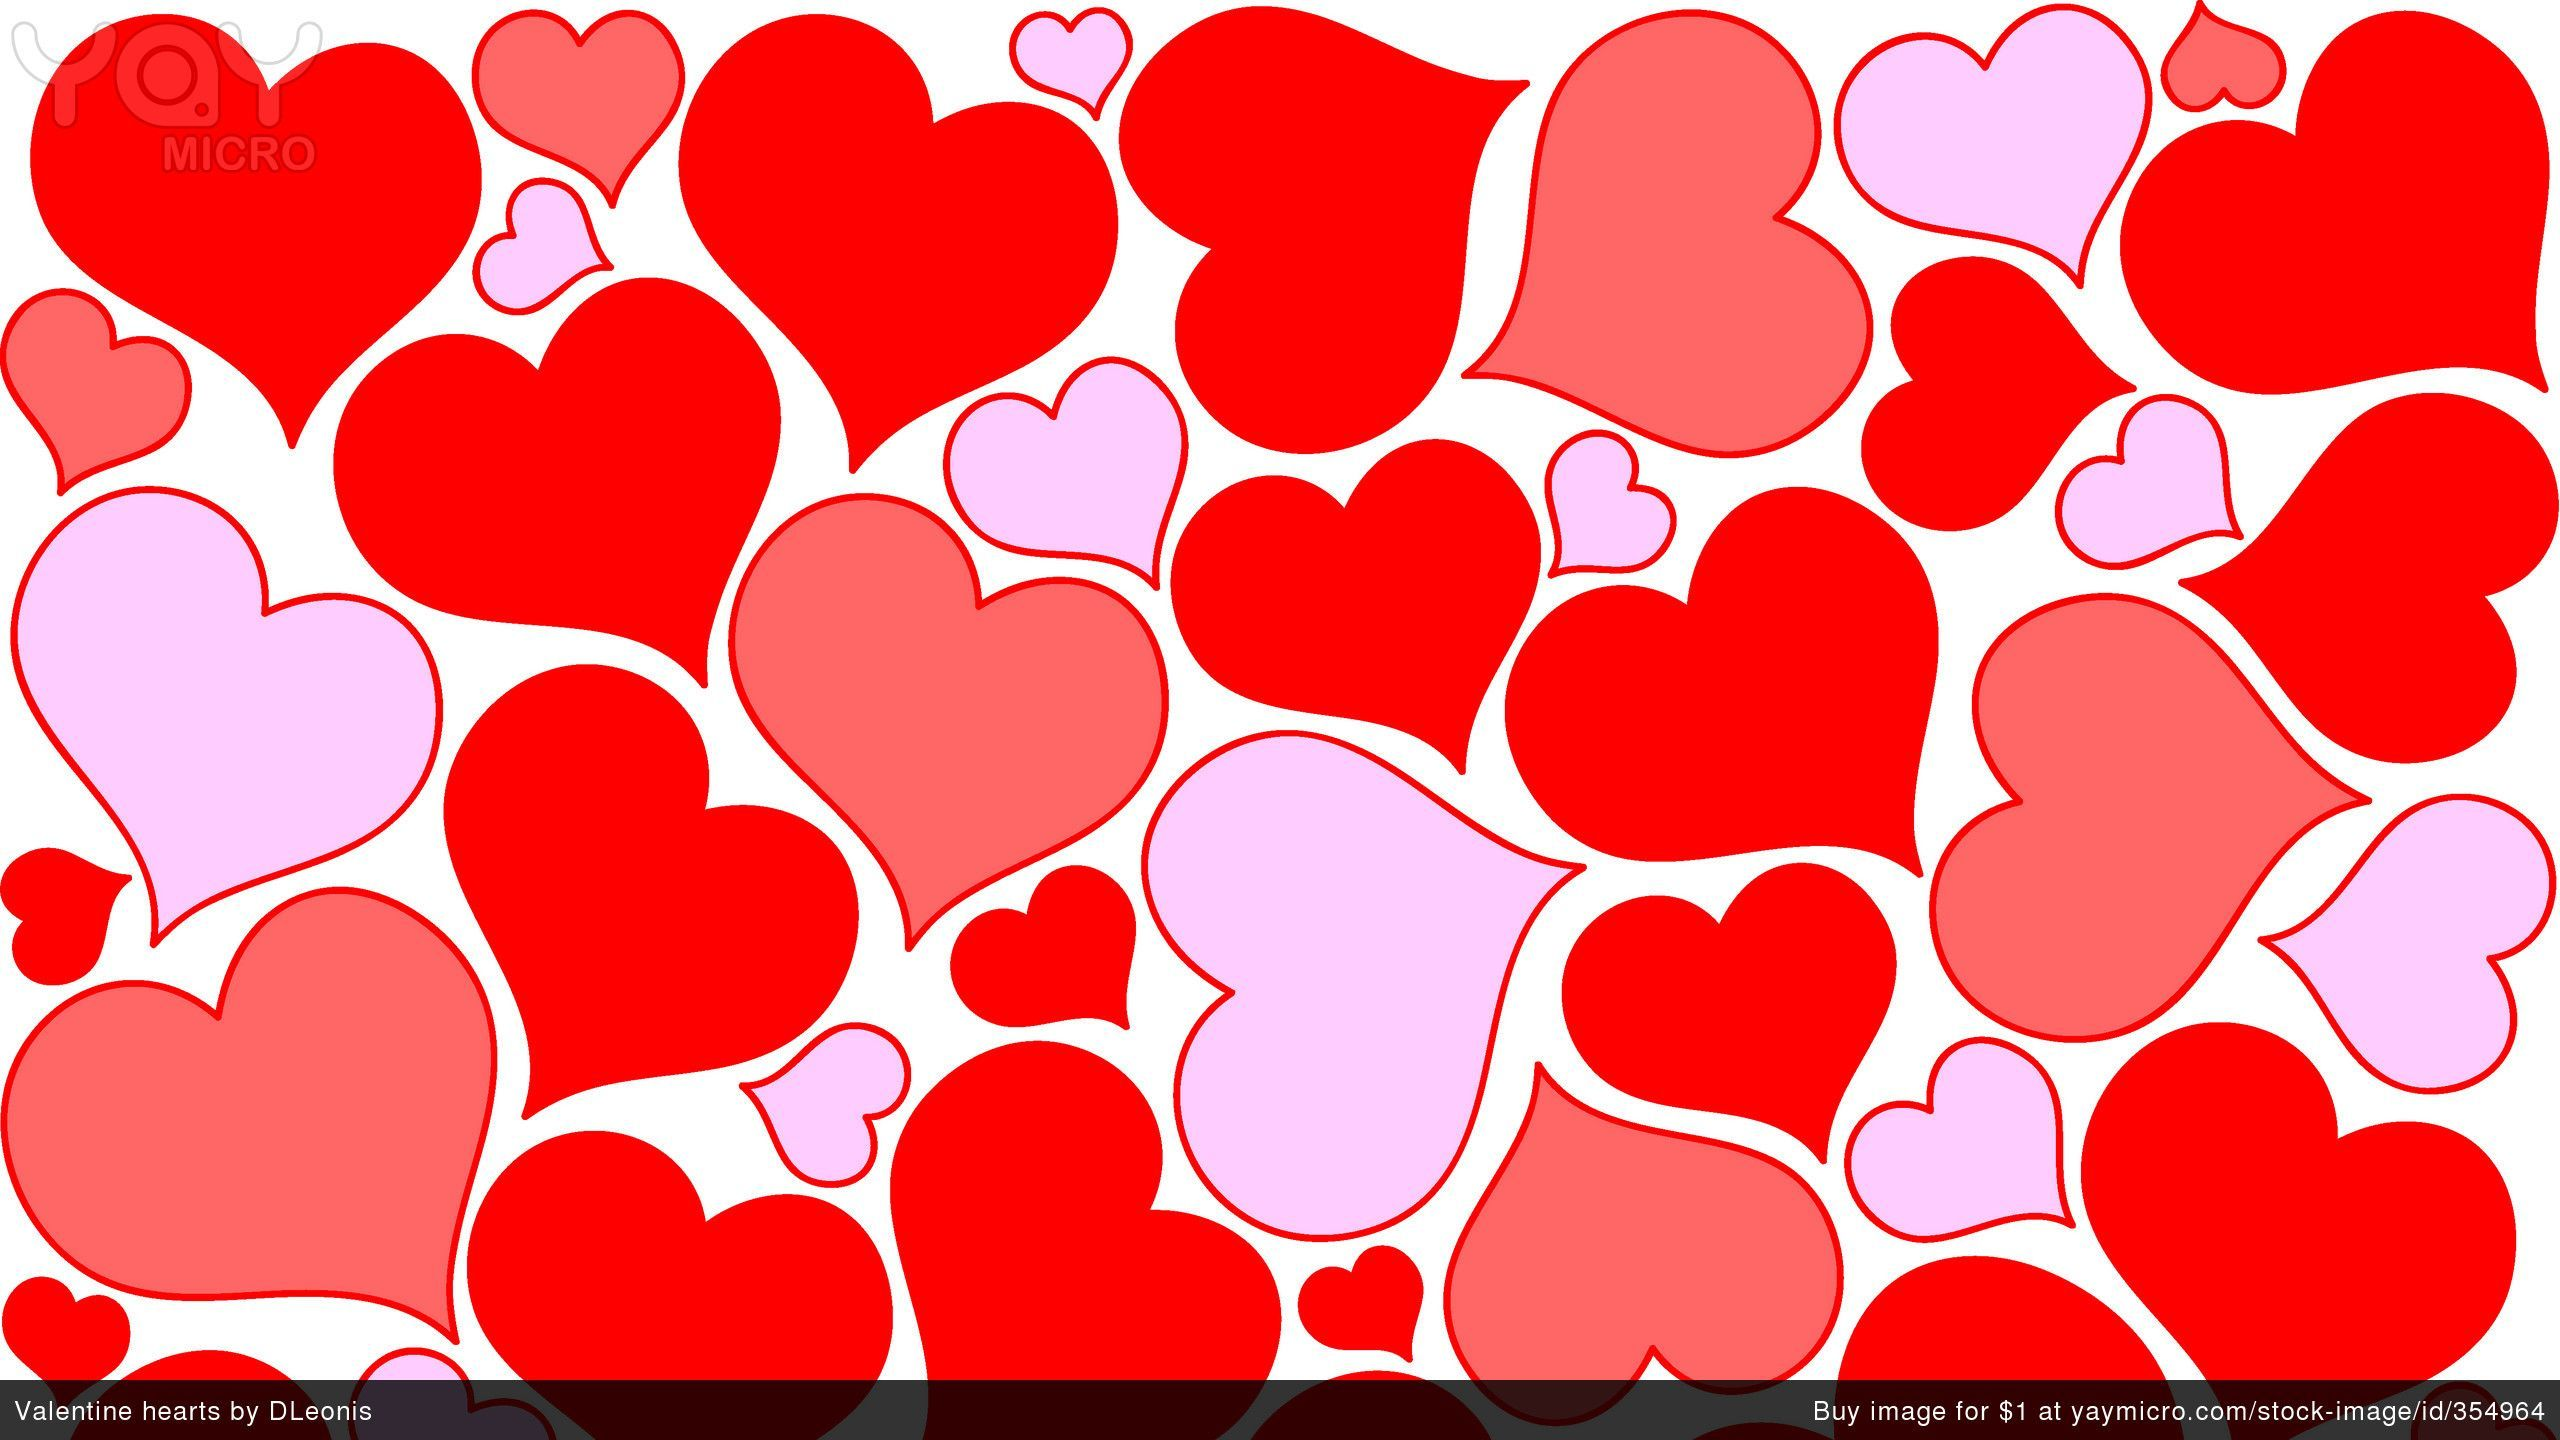 valentines heart wallpaper  undefined Valentine Heart Wallpapers (41 Wallpapers) | Adorable ...